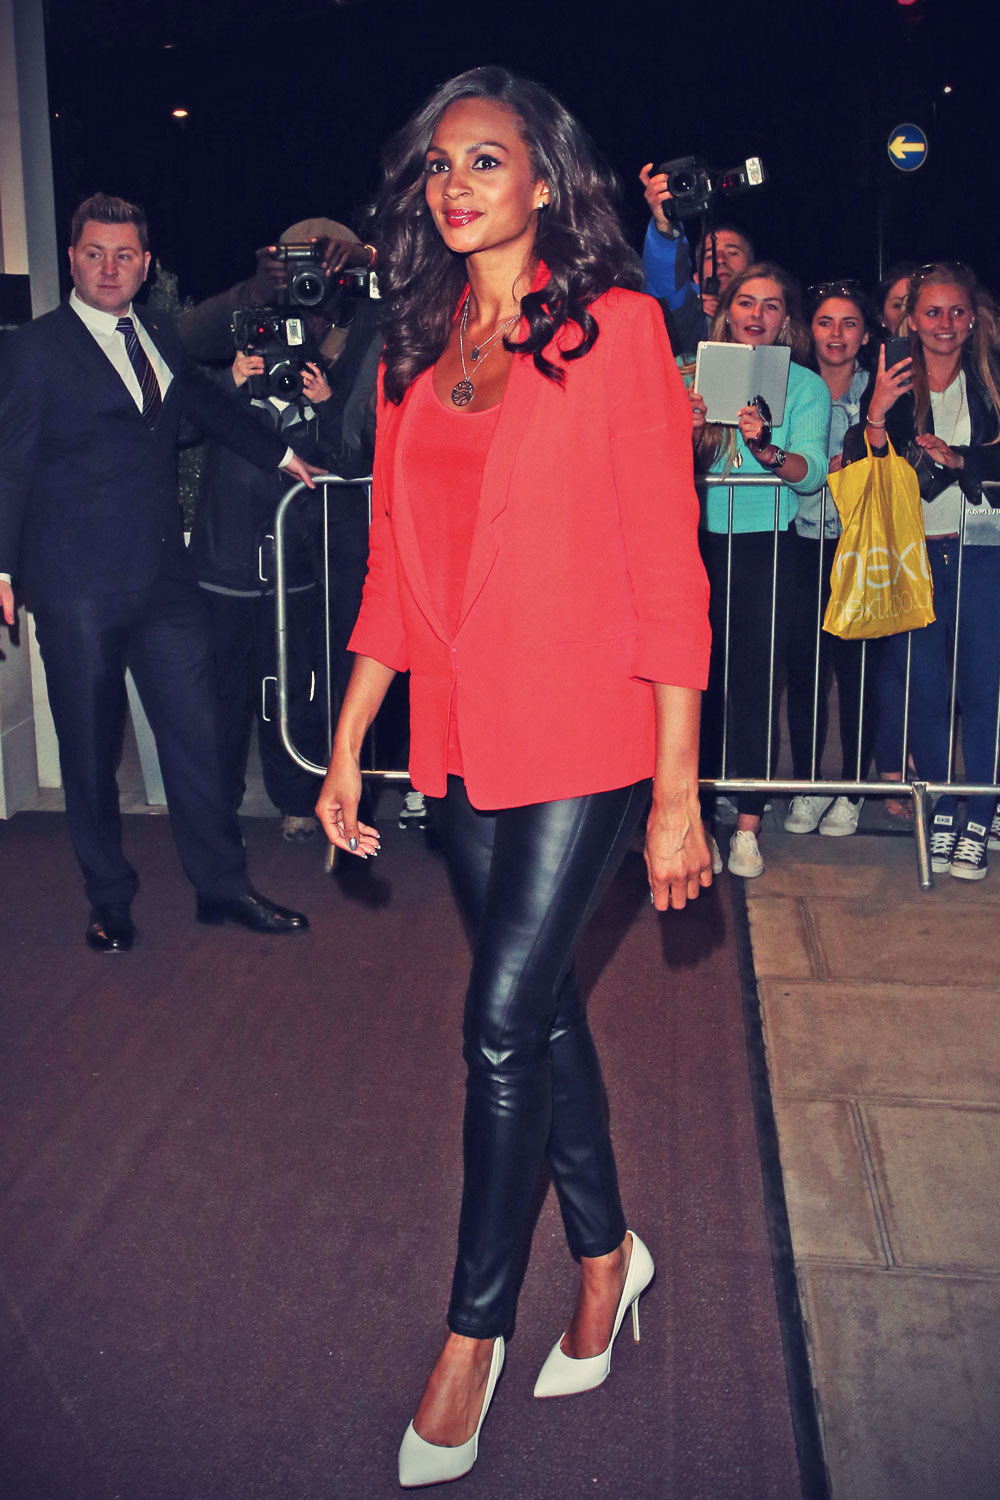 Alesha Dixon arriving at The Park Lane Hotel for Britain's Got Talent